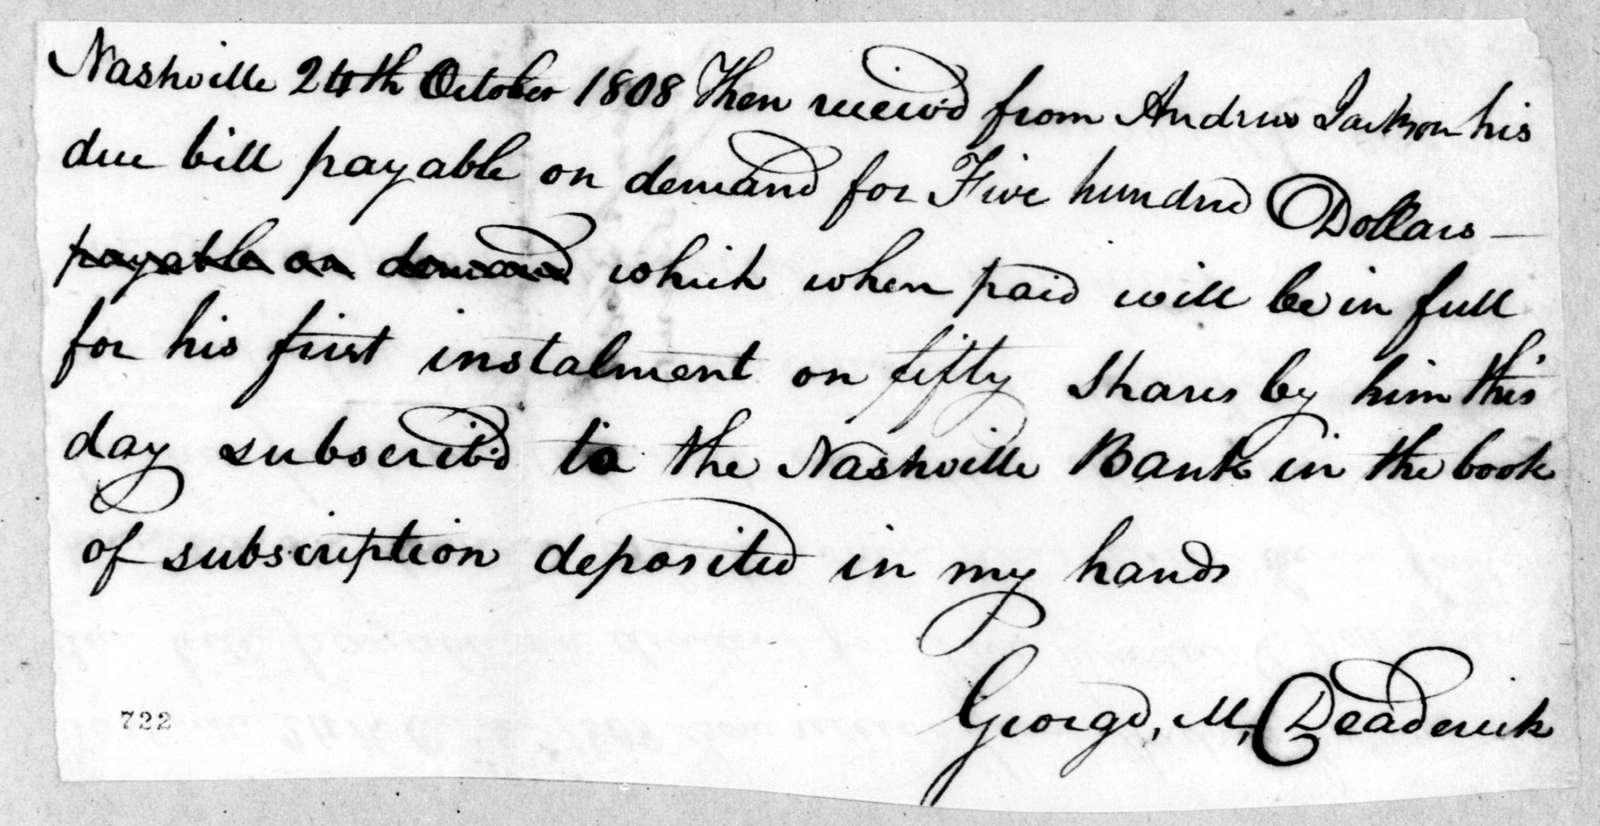 Andrew Jackson to George Michael Deaderick, October 24, 1808